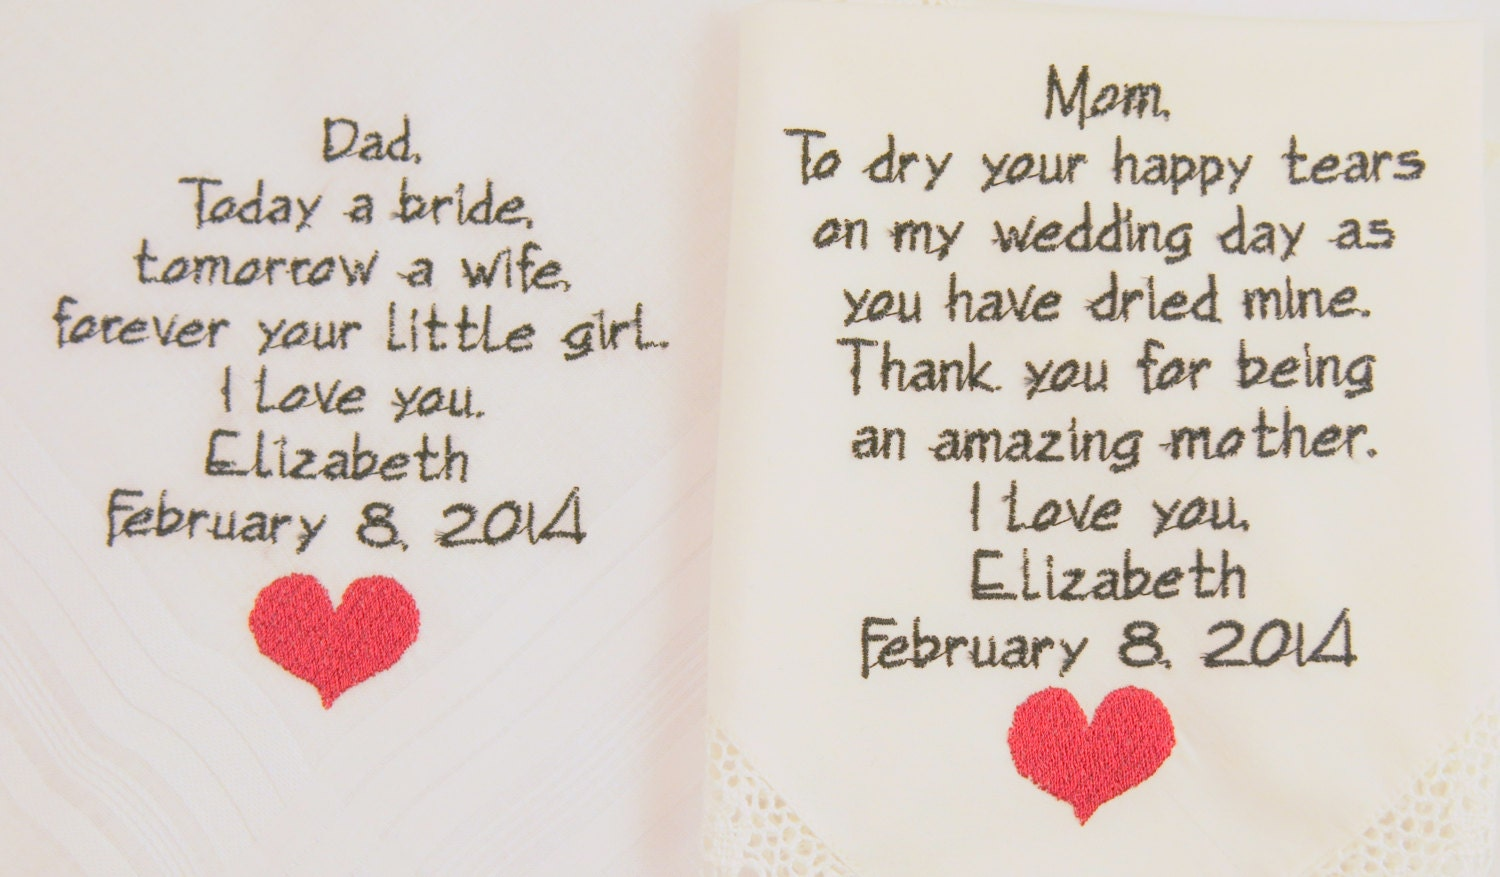 Best Gift For Mom And Dad Wedding Anniversary : ... Wedding Hankerc hiefs handkerchiefs Personalized 2 gifts for parents